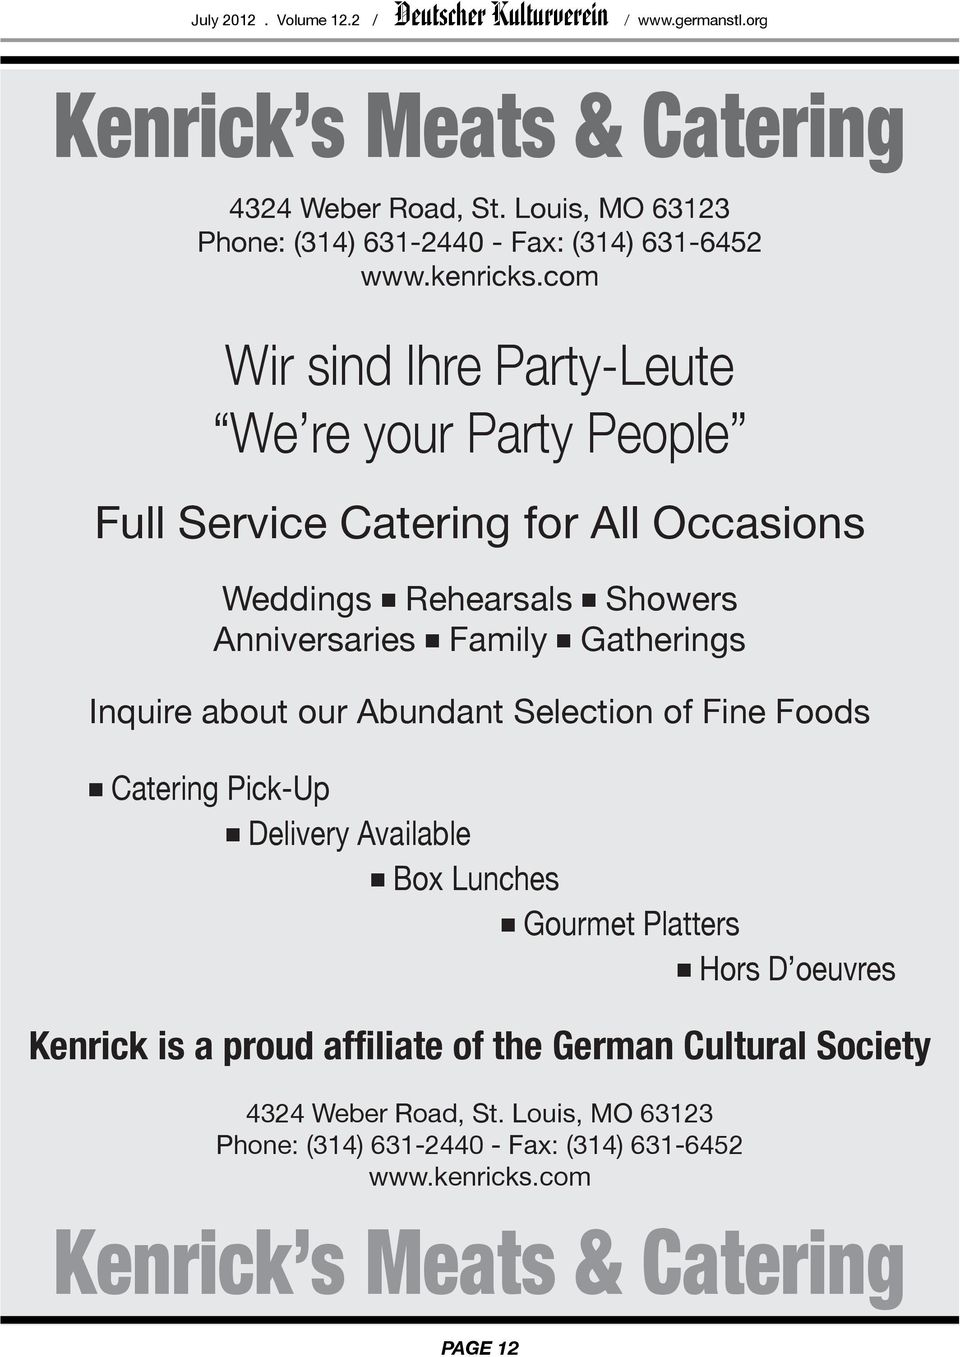 com Wir sind Ihre Party-Leute We re your Party People Full Service Catering for All Occasions Weddings n Rehearsals n Showers Anniversaries n Family n Gatherings Inquire